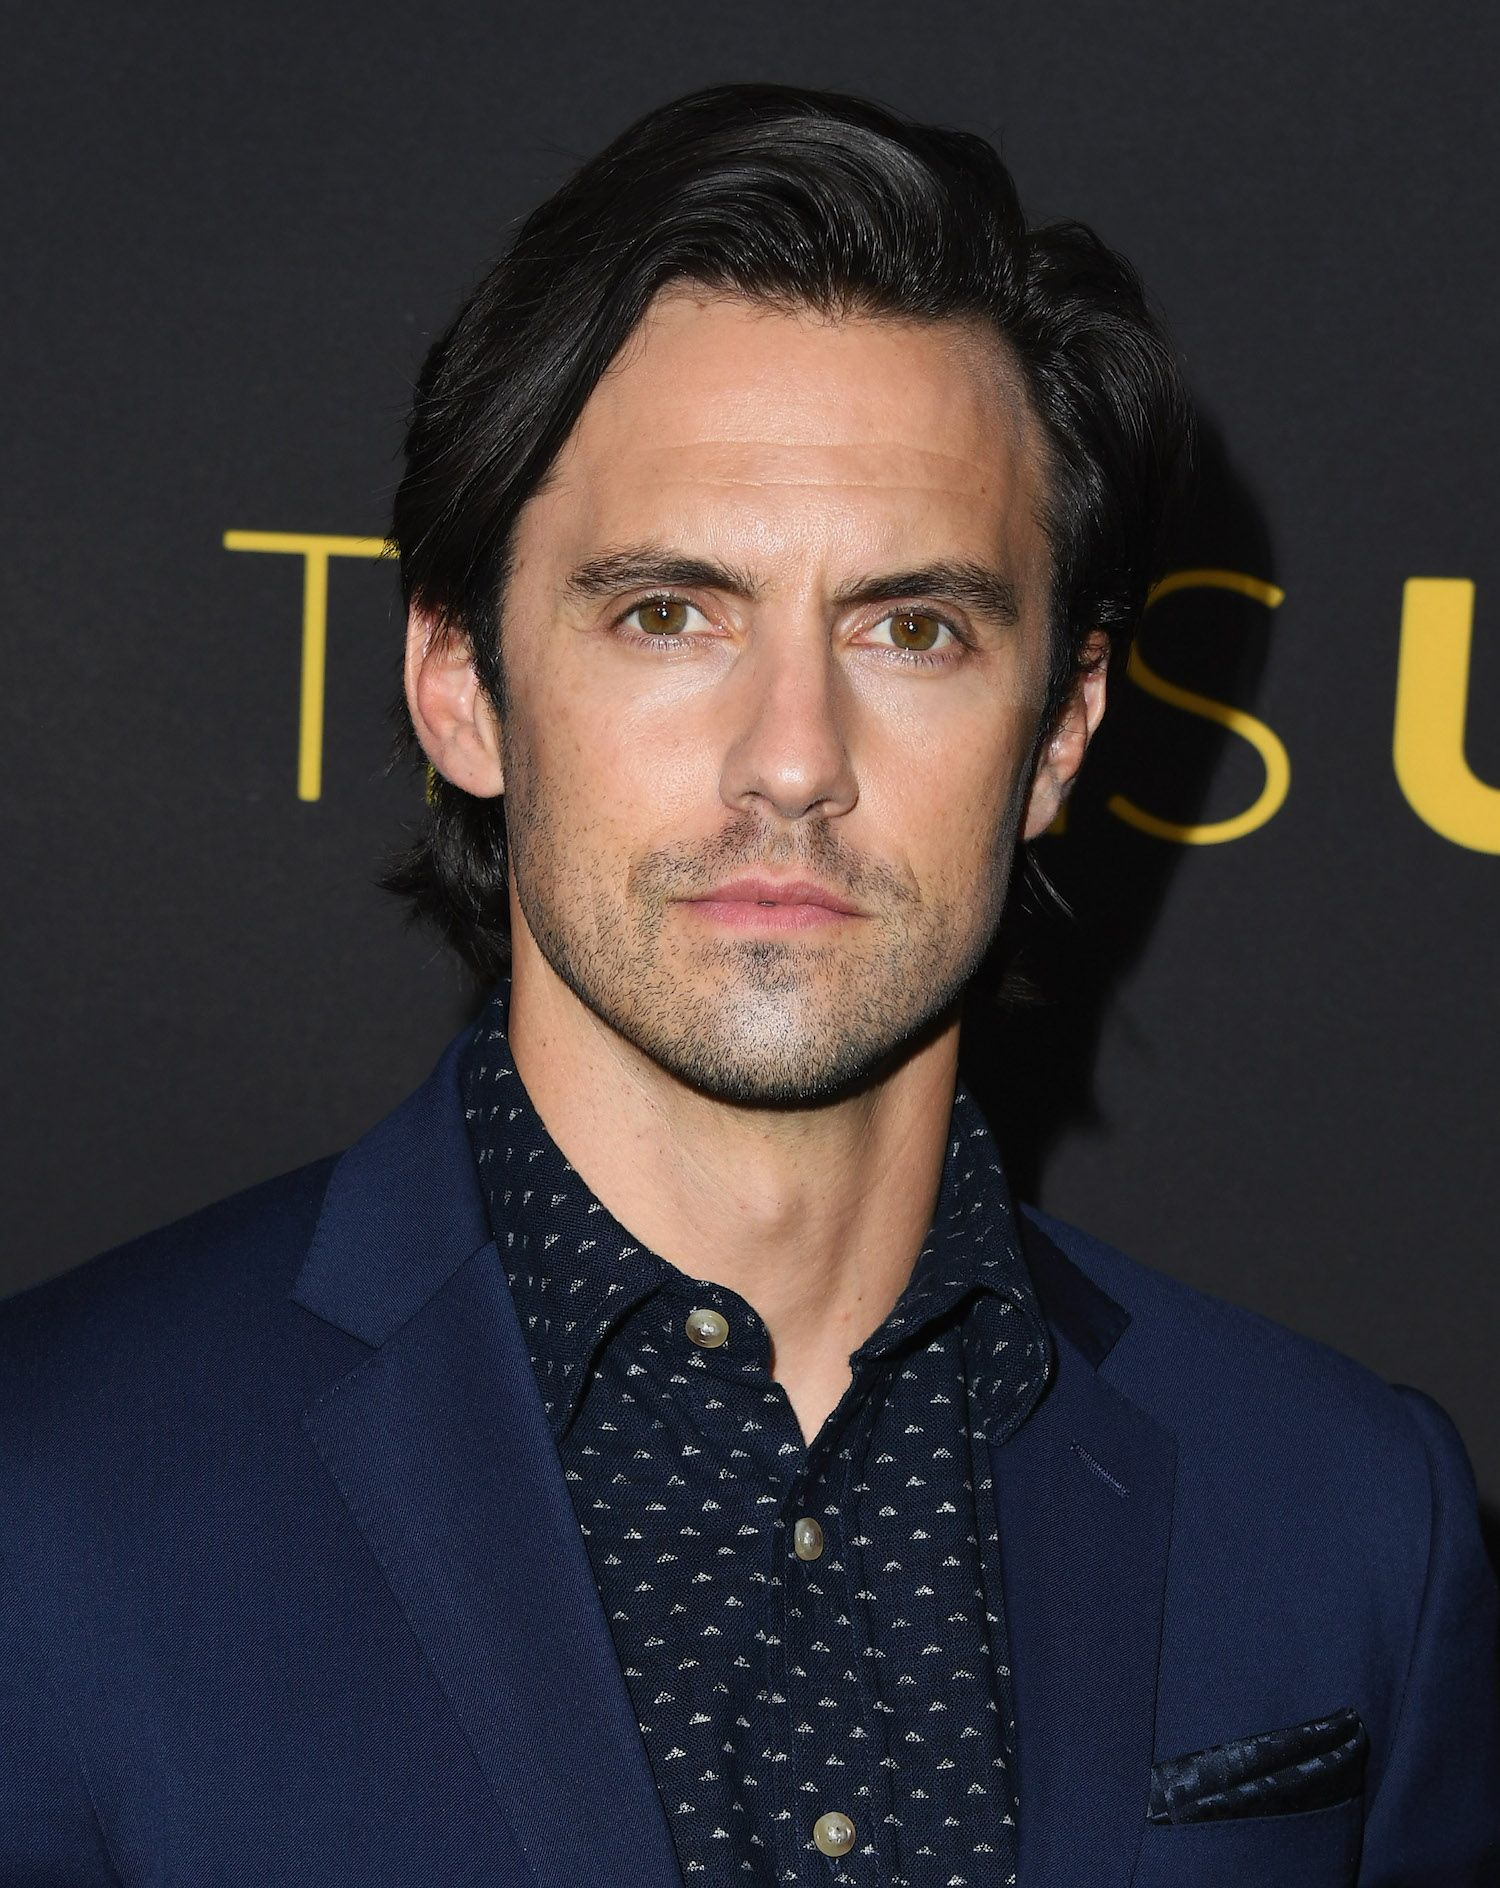 The 'This Is Us' Season 3 Cast Has Some Surprising New Characters